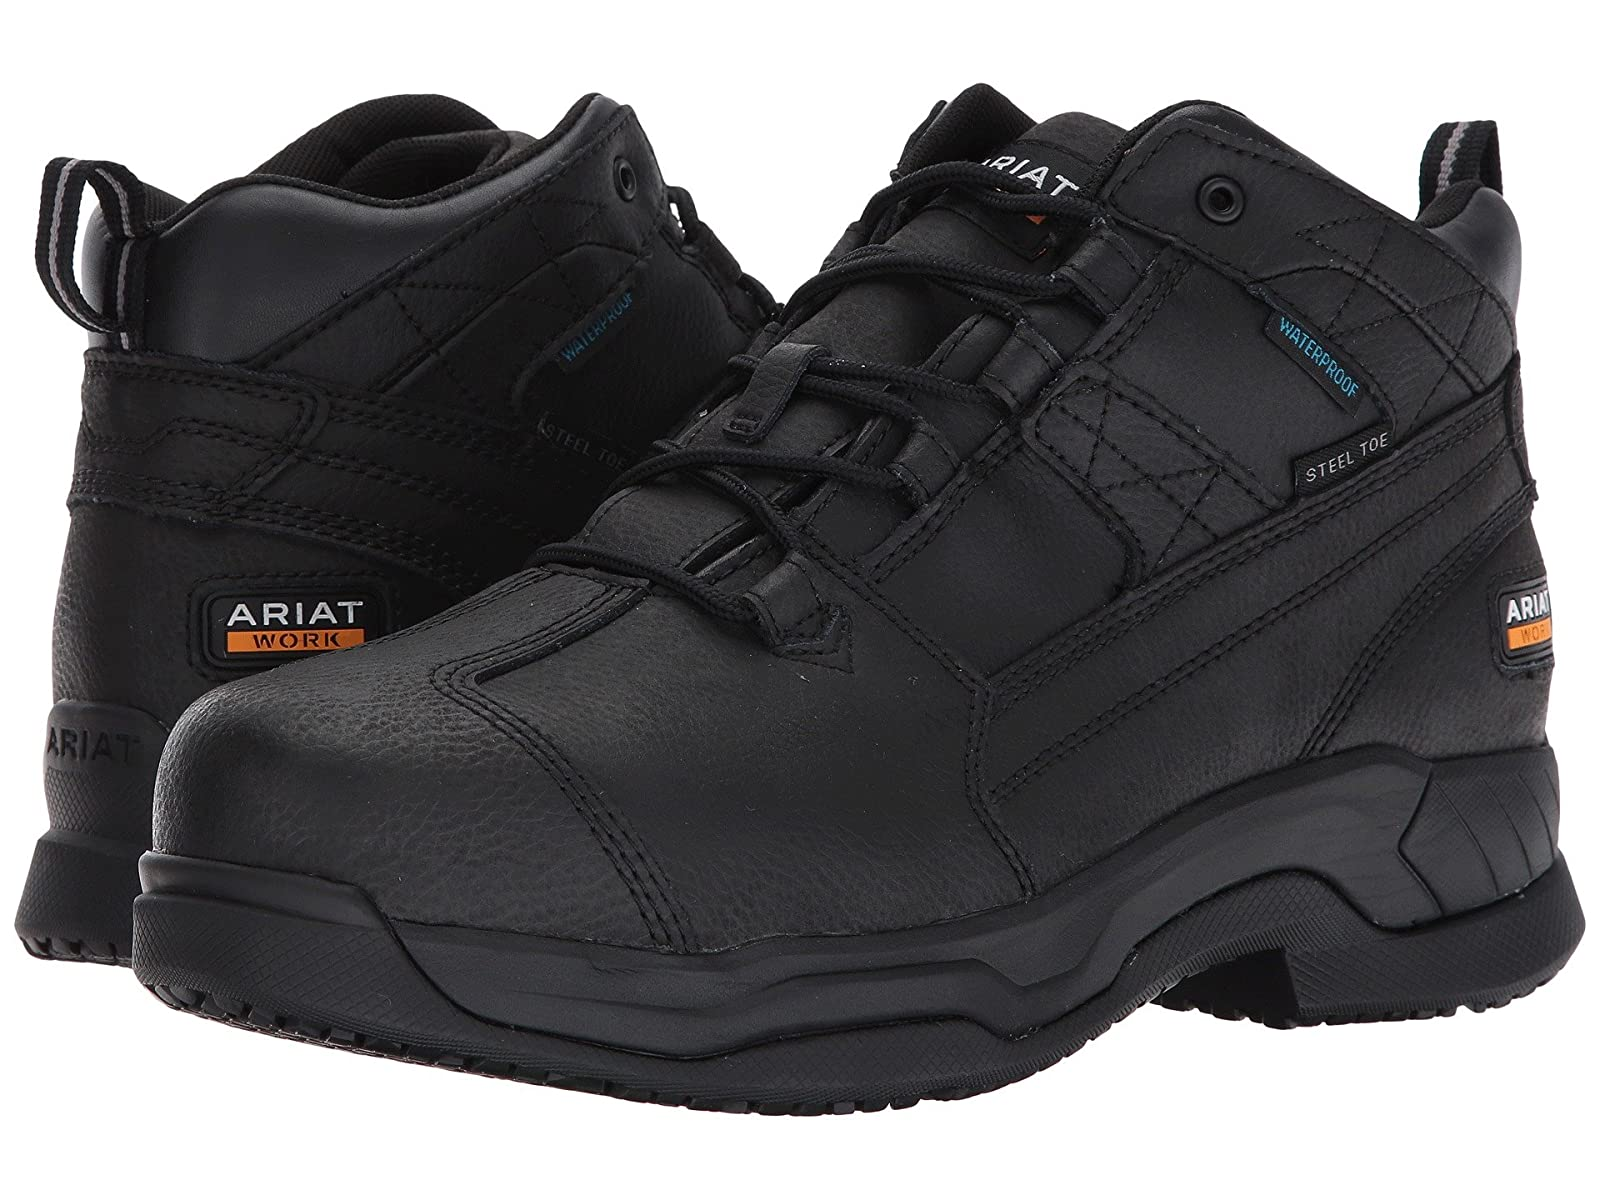 Ariat Contender H2O Steel ToeSelling fashionable and eye-catching shoes